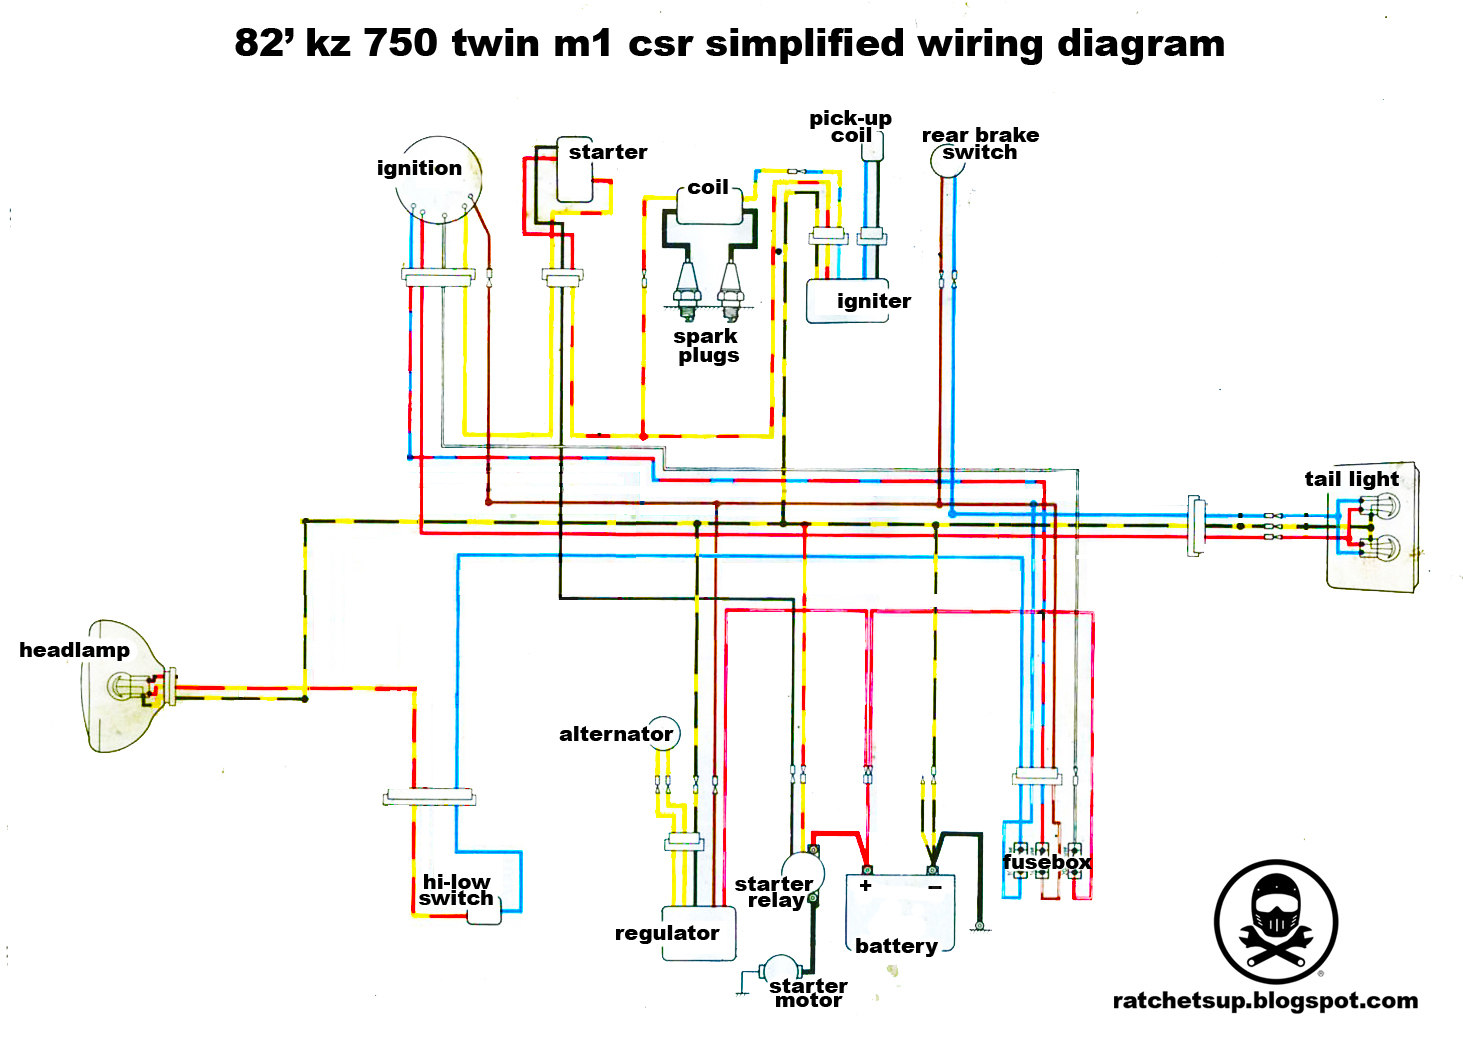 1981 Kawasaki Kz750 Wiring Harness 34 Diagram Images For Simple Simplified Minimal Csr Kzrider Forum